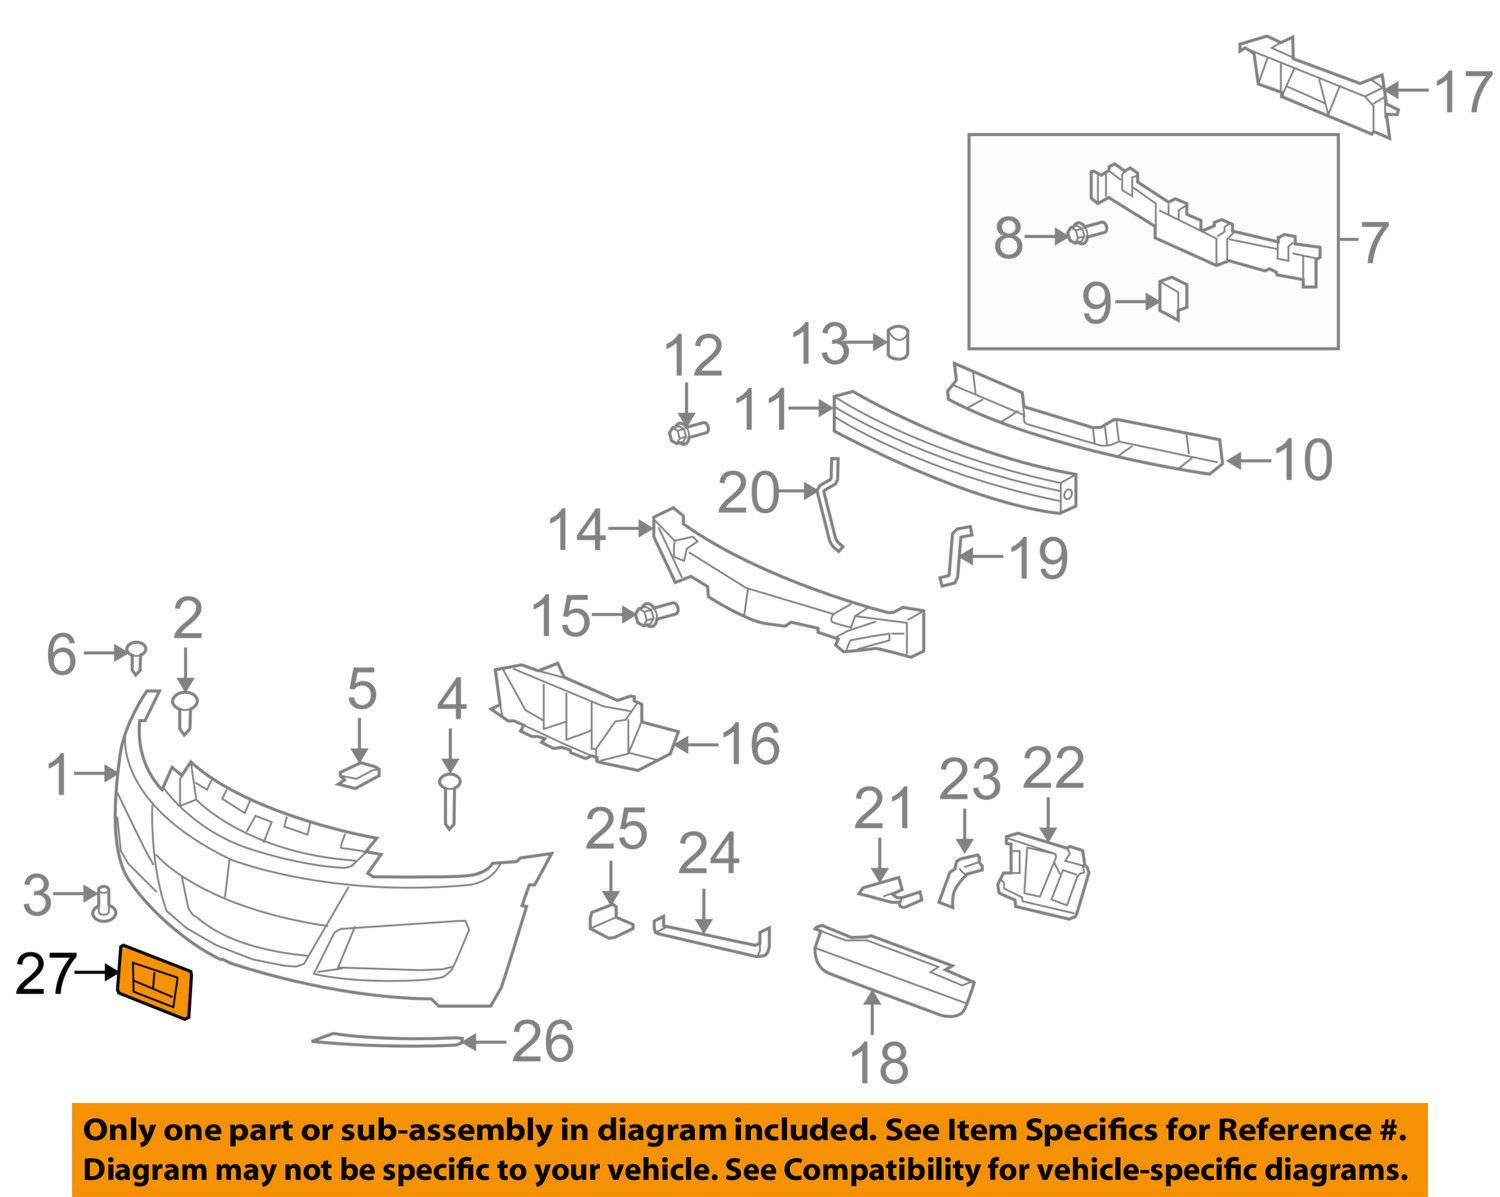 General Motors, Bracket, 10364149 GM